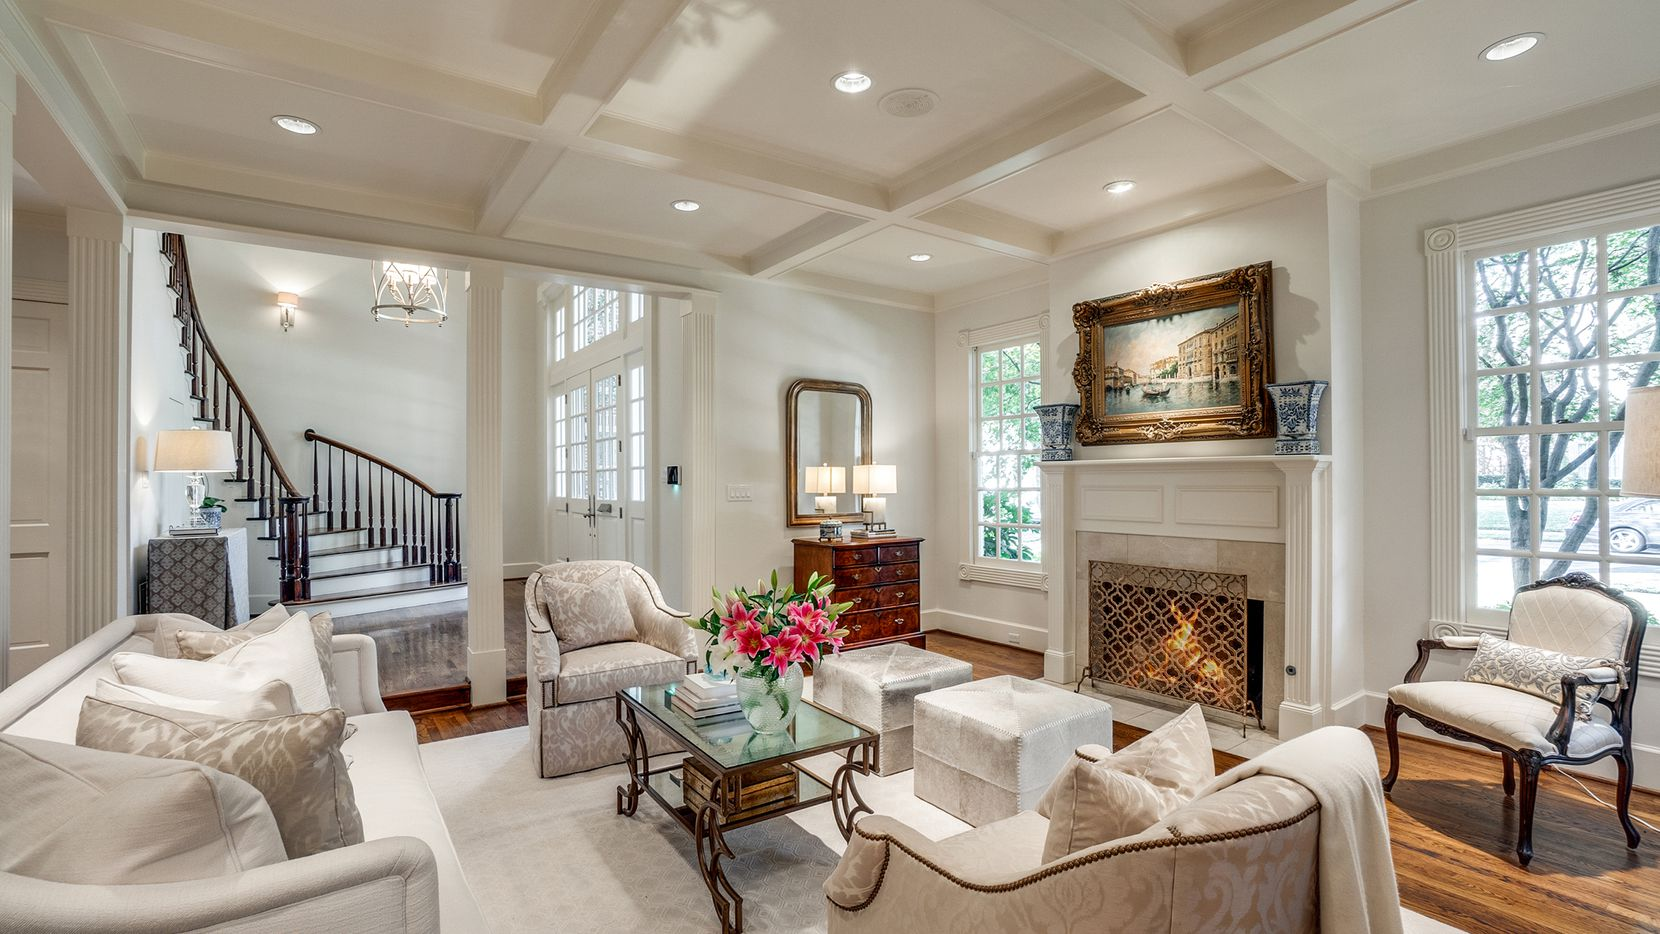 The home at 3115 Stanford Ave. in University Park is designed for entertaining, with open formal rooms and living spaces.